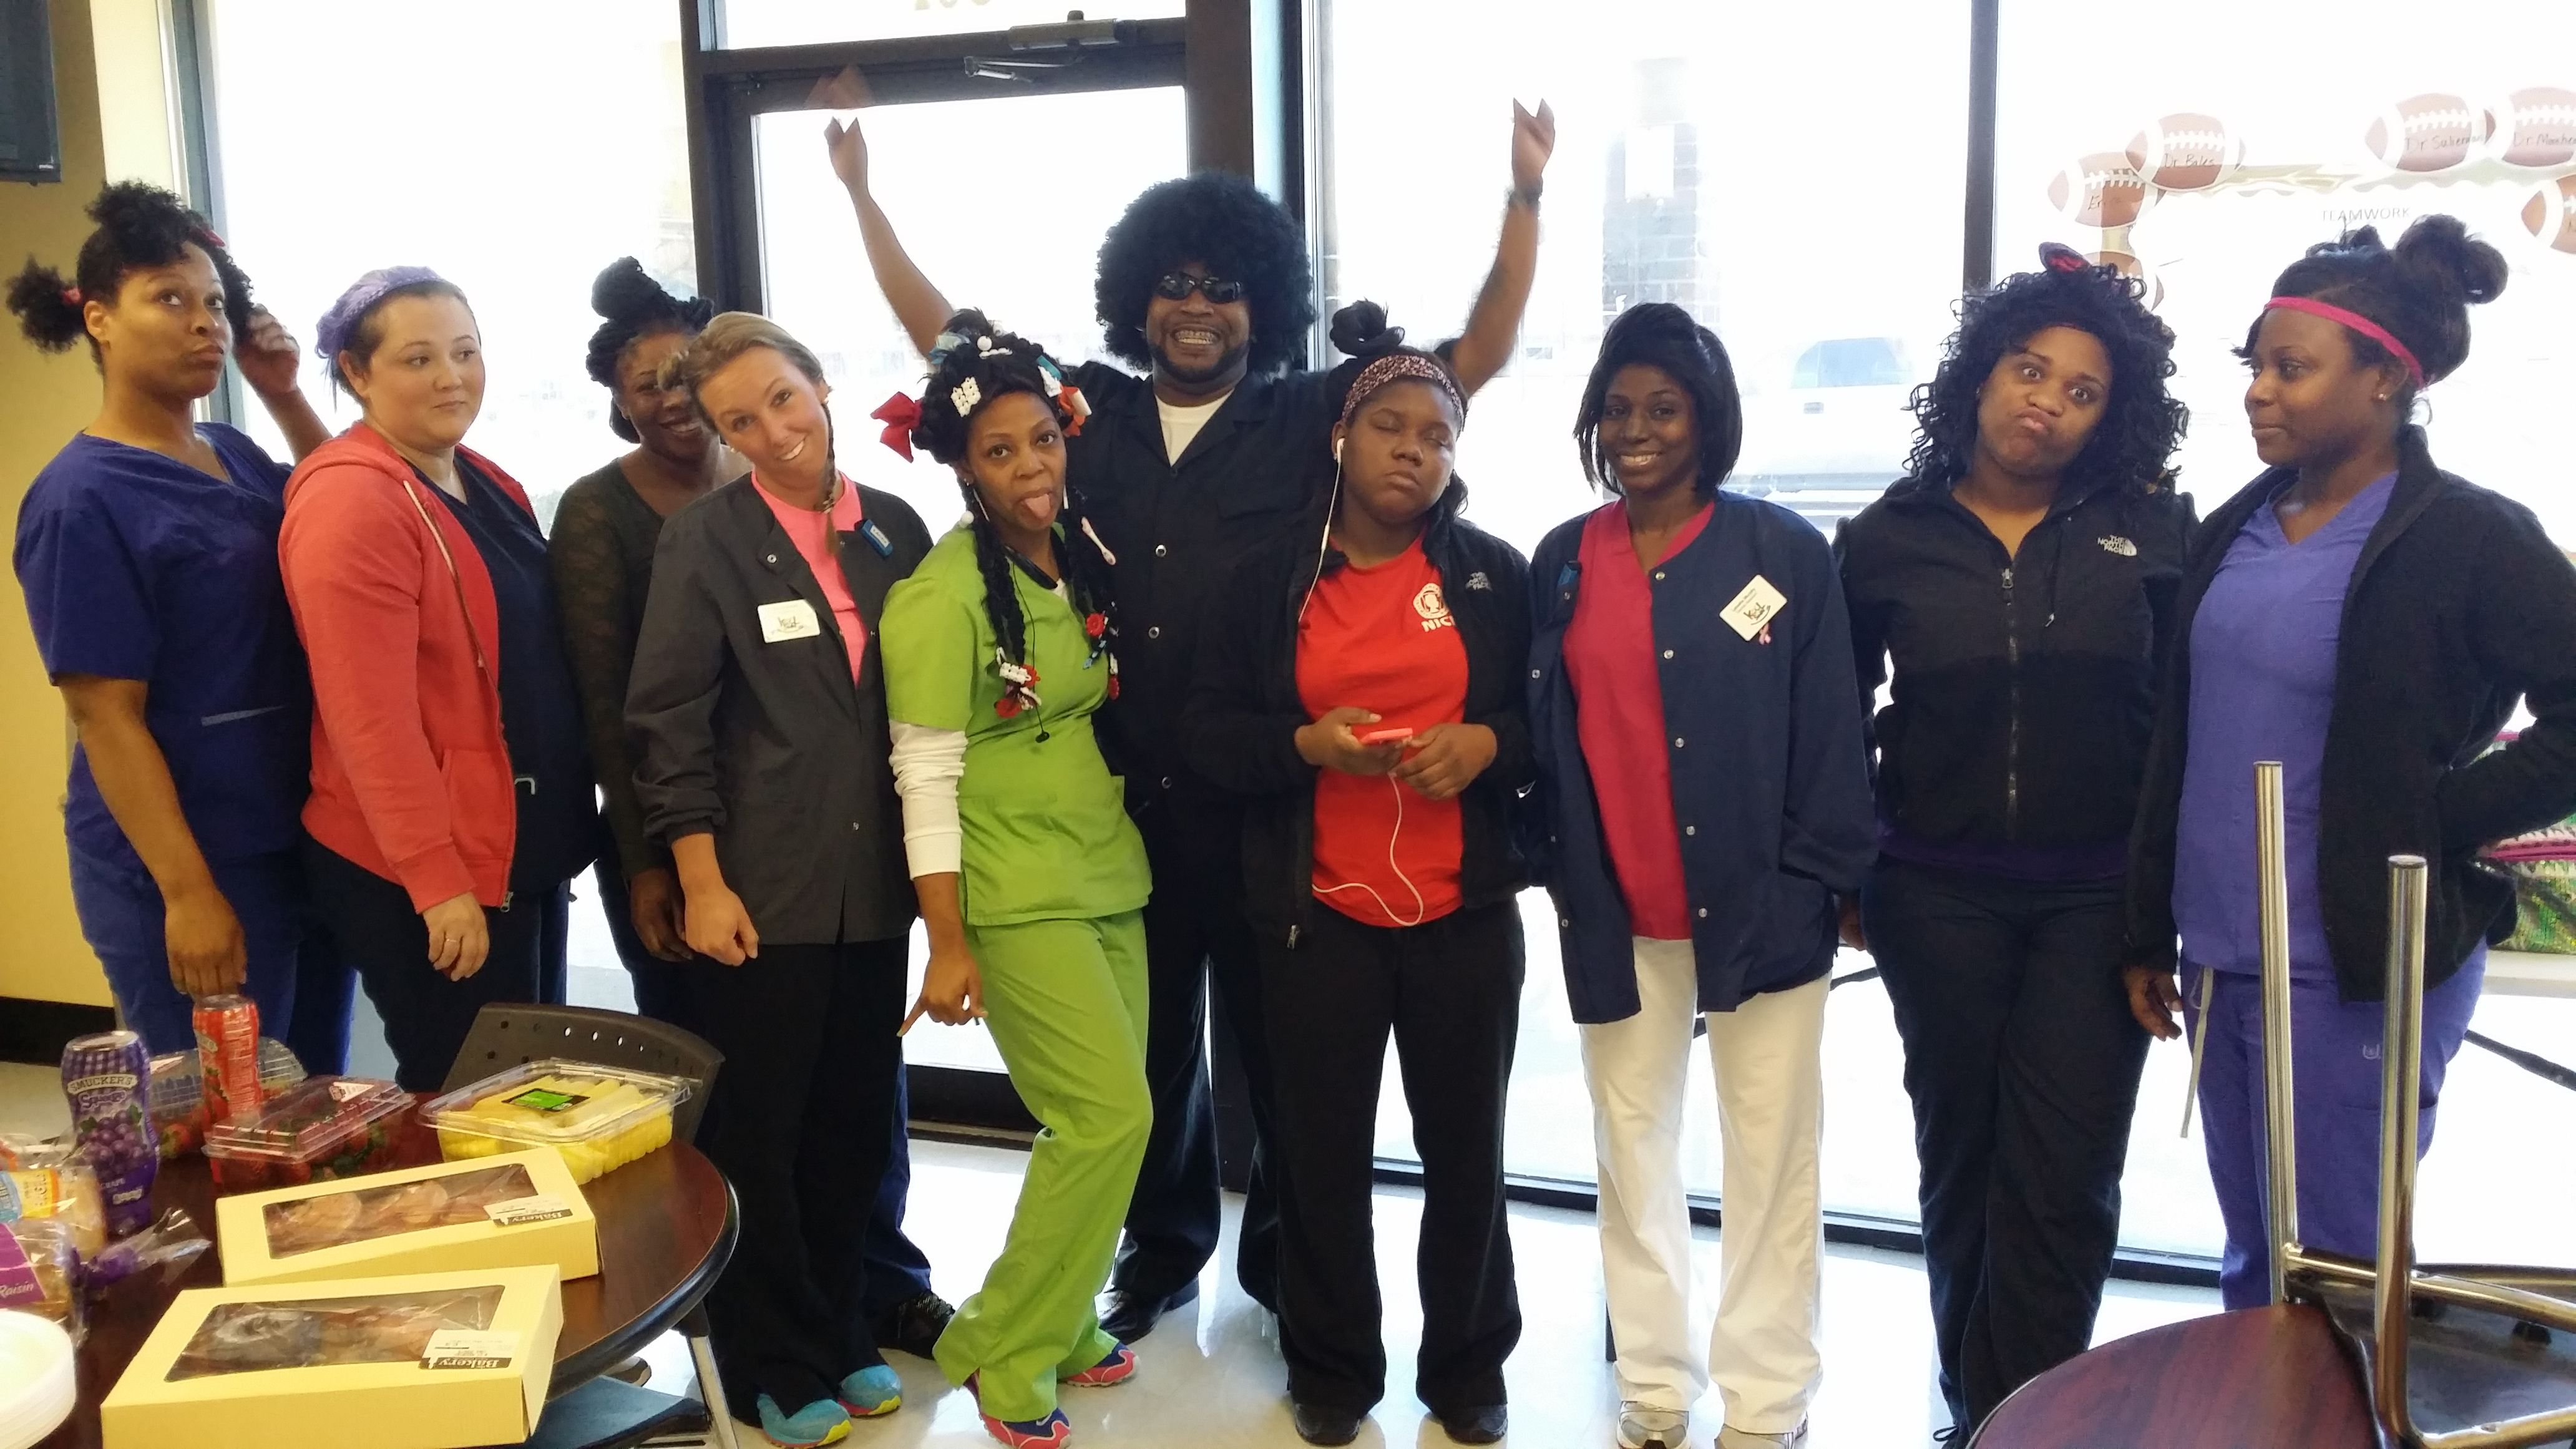 Spirit Week Continues At The Pine Bluff Kool Smiles Office With Crazy Hair Day Crazy Hair Days Crazy Hair Hair Day